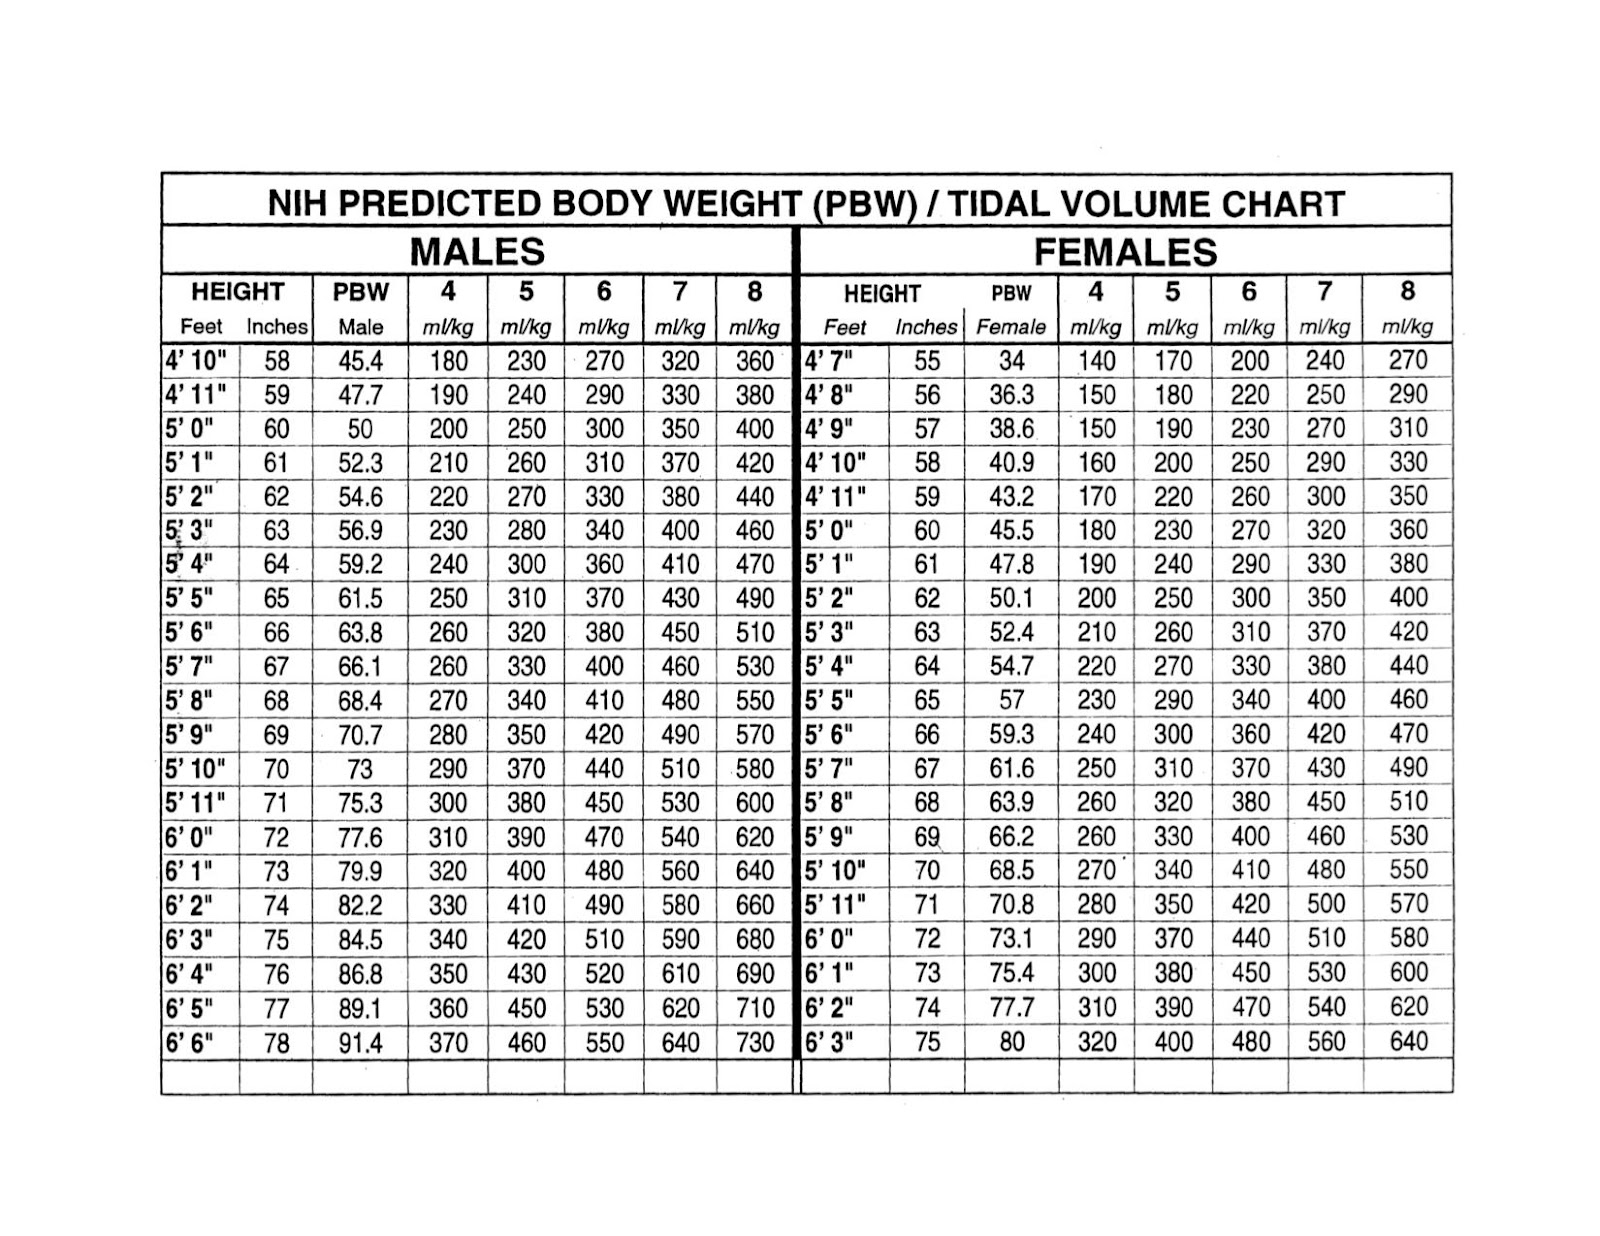 NIH-Predicted-Body-Weight-Tidal-Volume-Chart.jpg